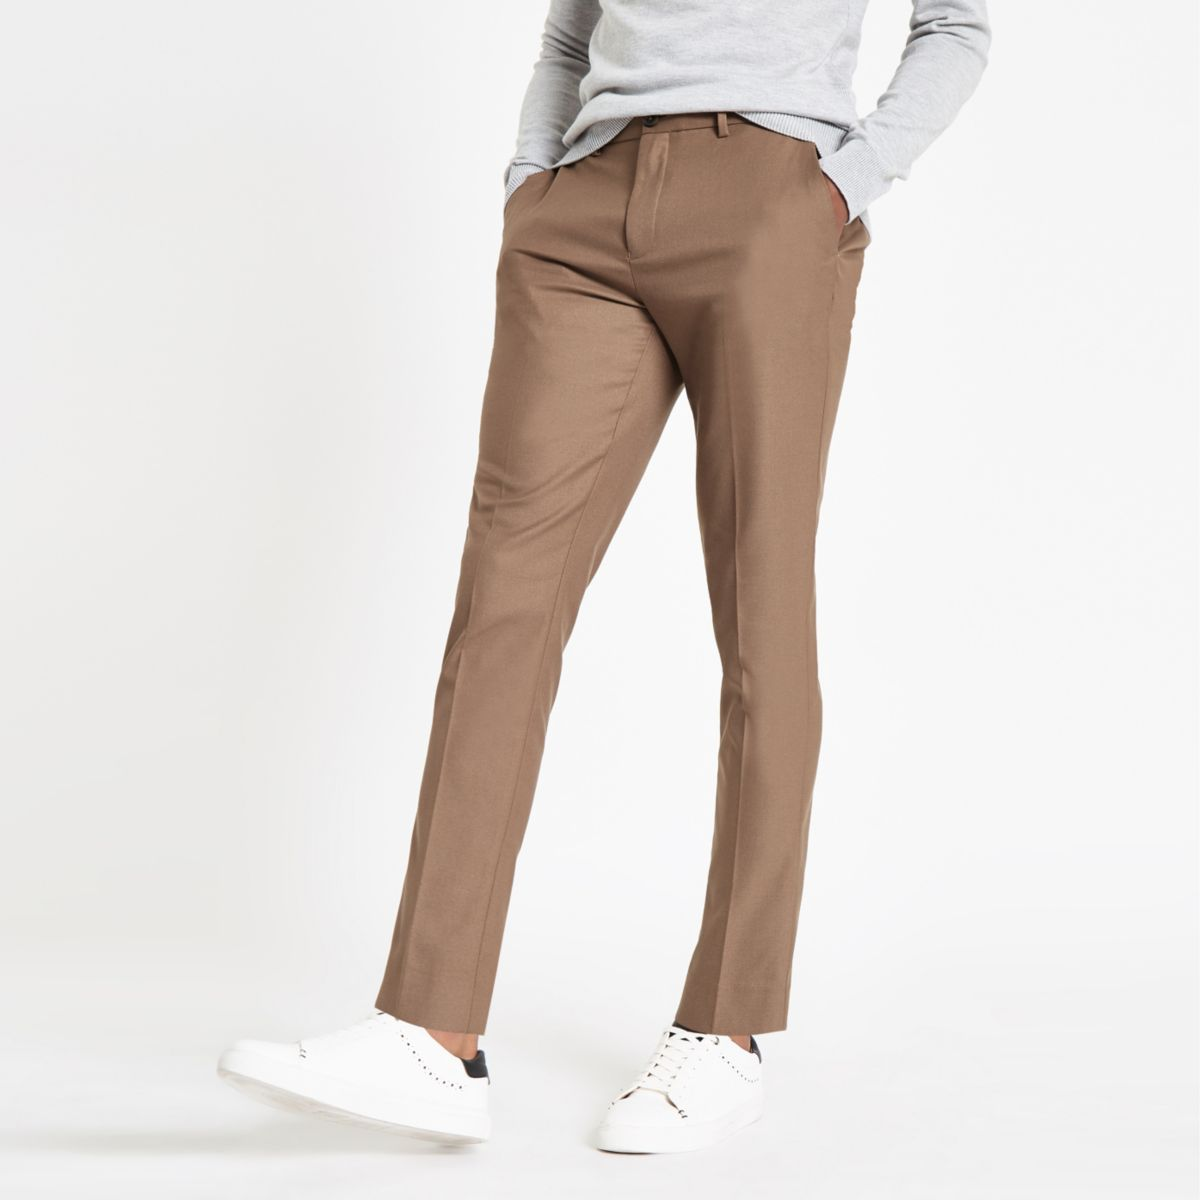 Find great deals on eBay for mens skinny trousers smart. Shop with confidence.